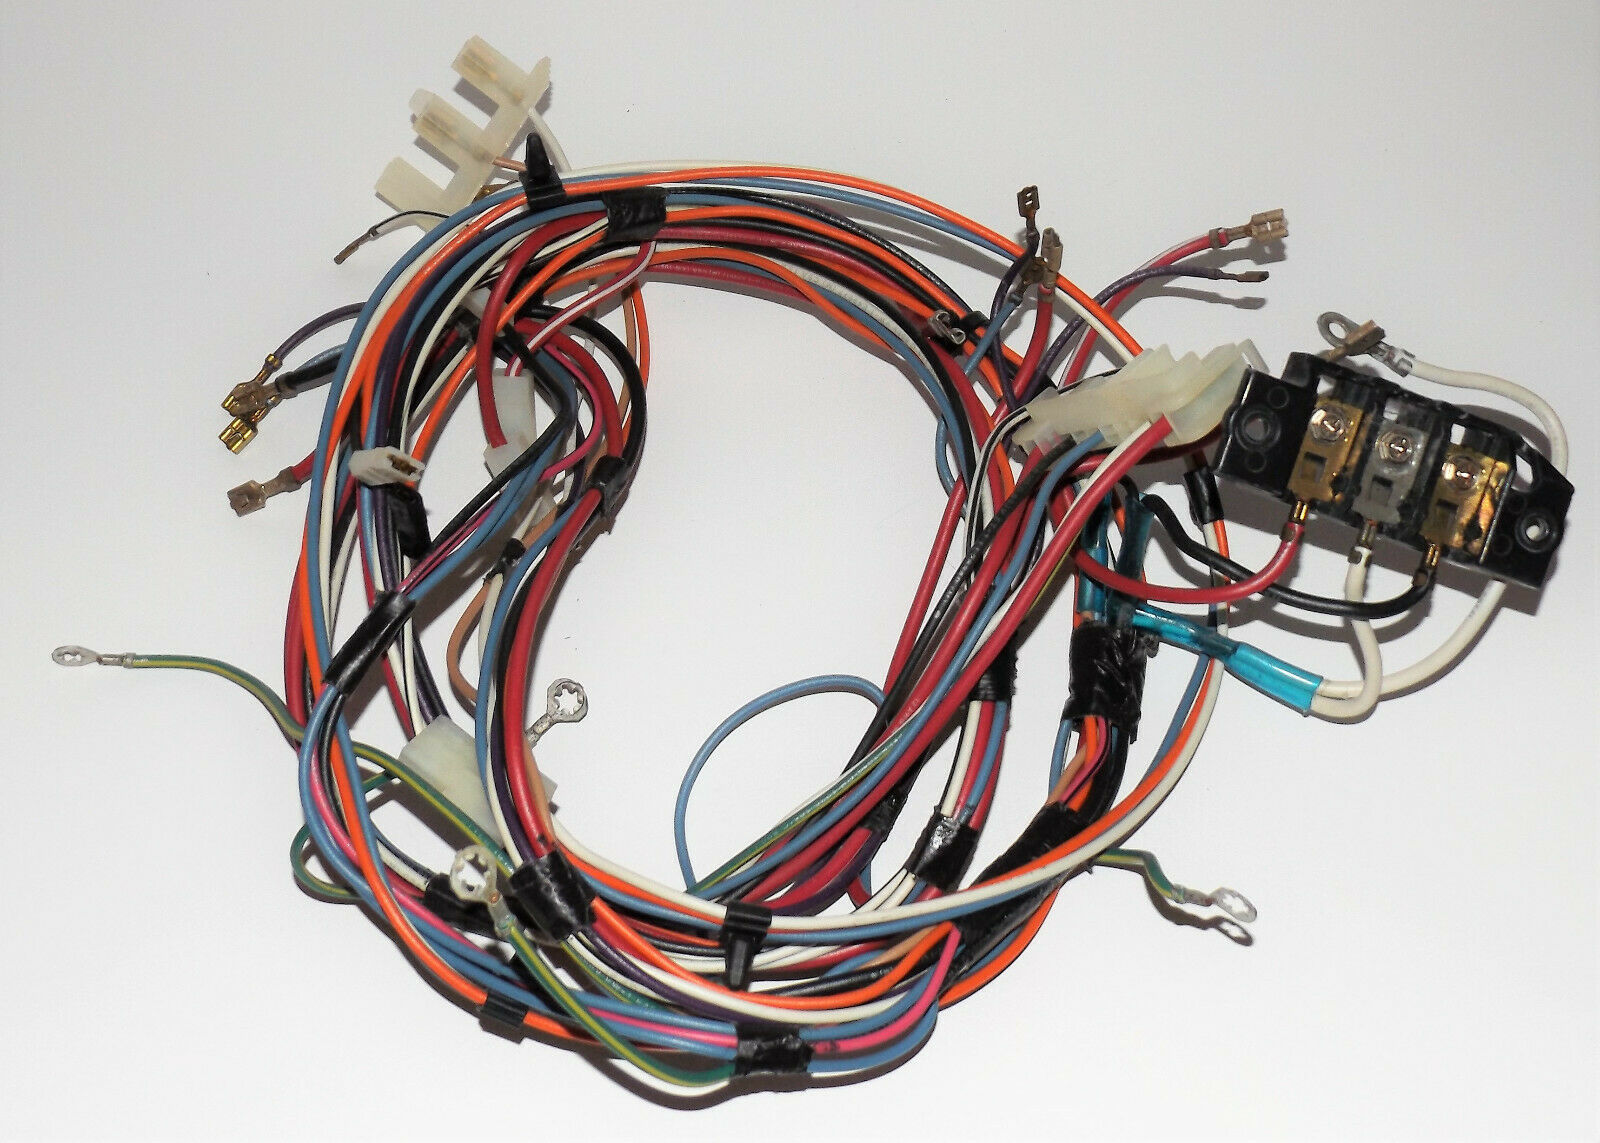 Primary image for Whirlpool Dryer : Main Wire Harness (8299873 / 8576503) {P4331}